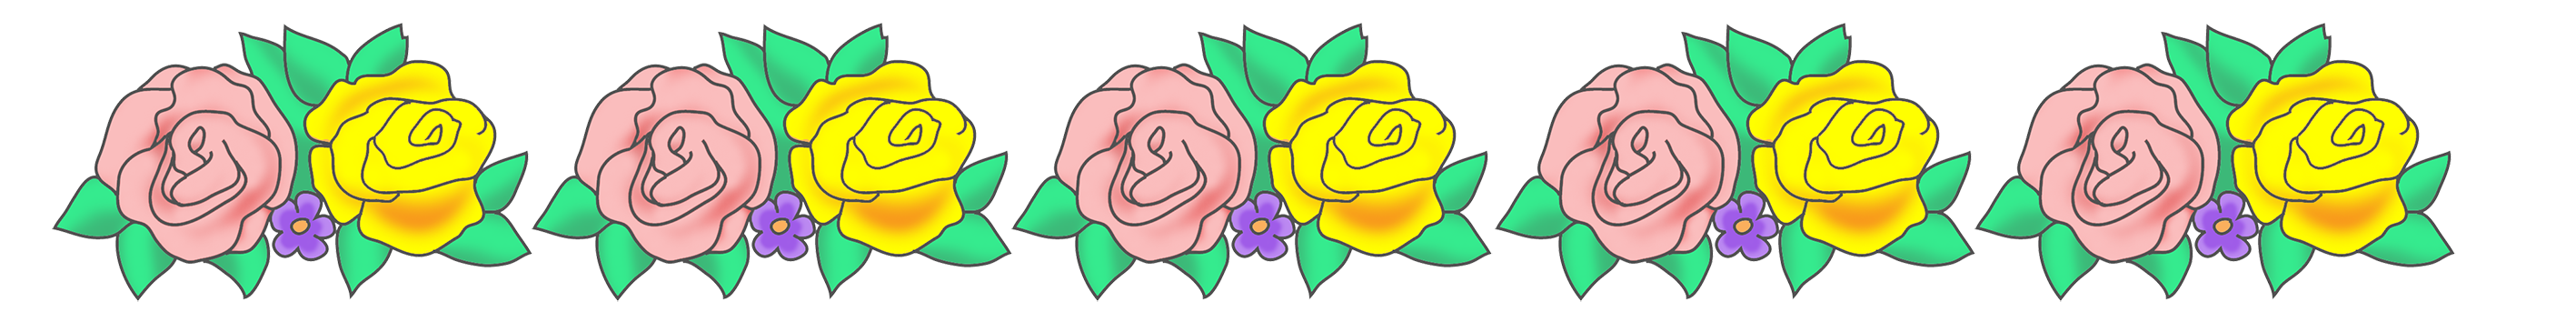 Free flower borders clipart clip art royalty free download Flower borders and frames clip art royalty free download